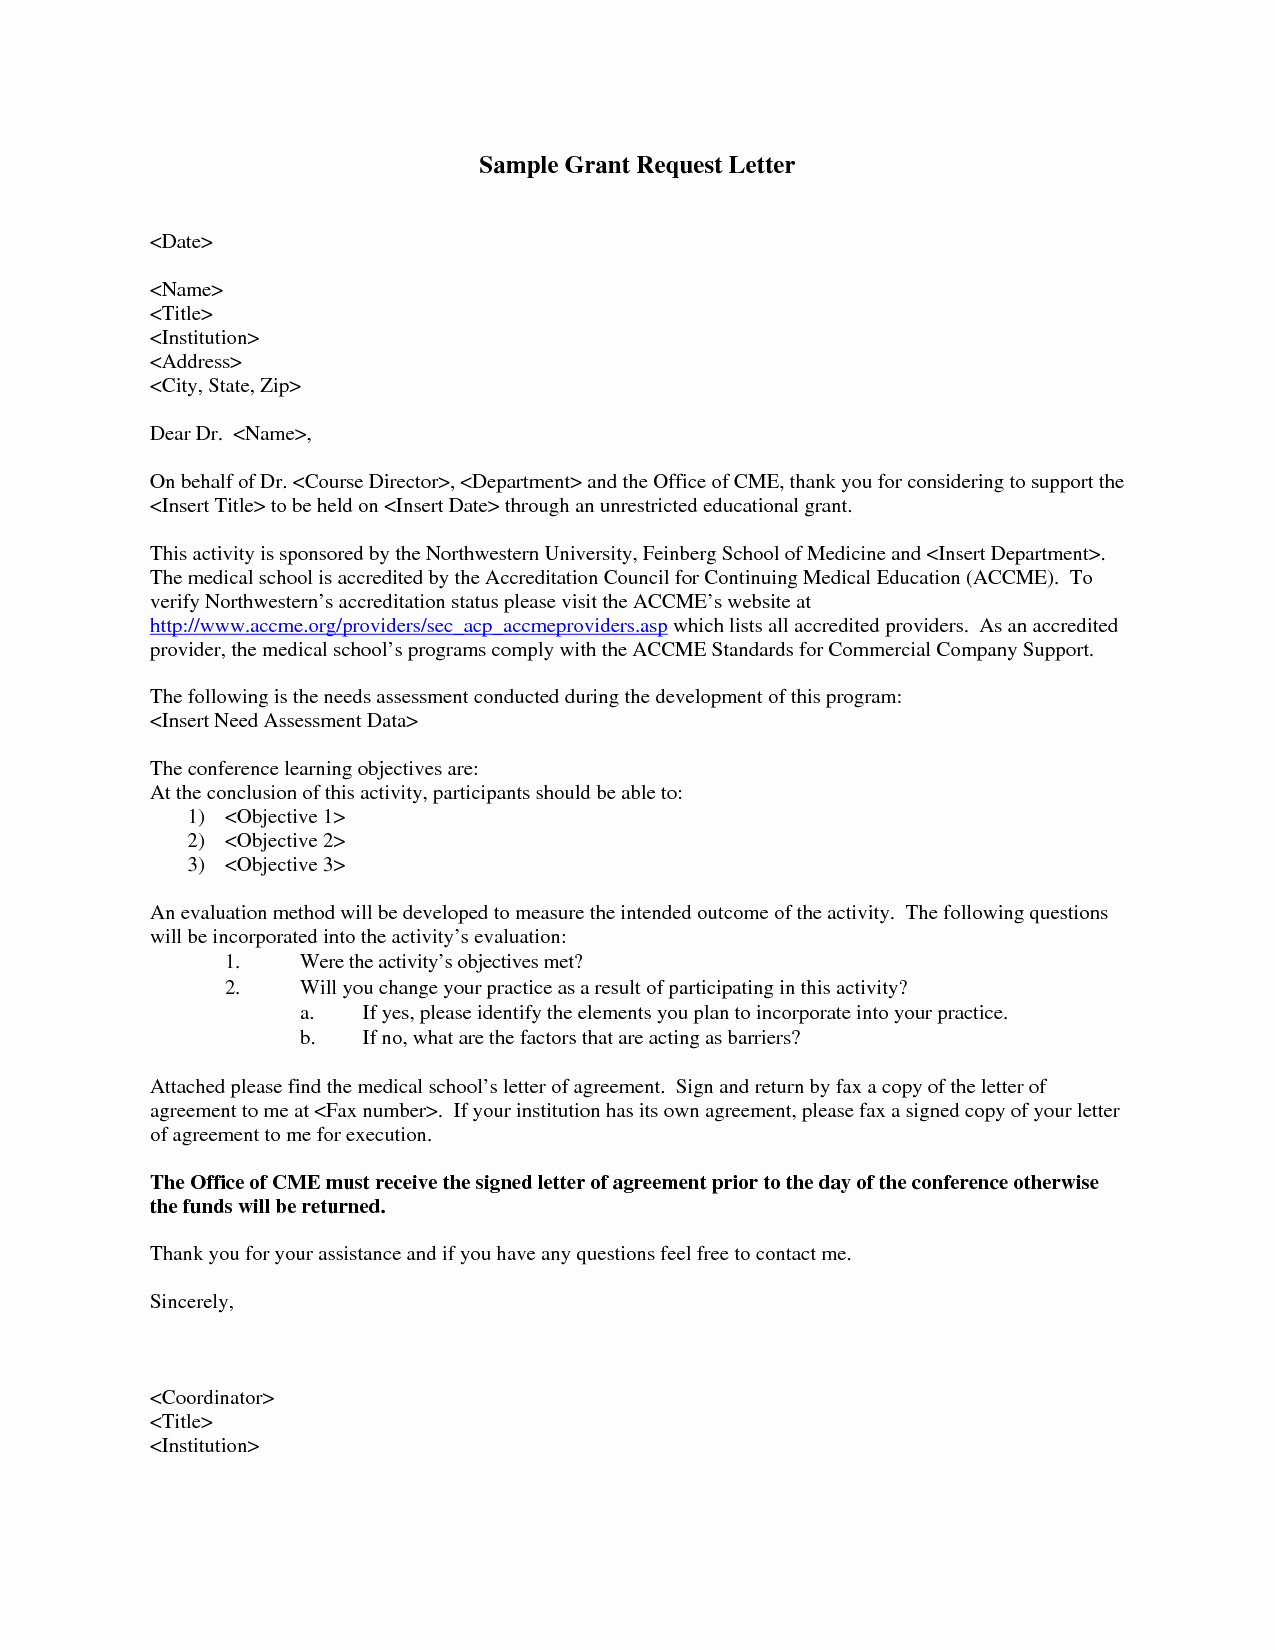 Request for Funds form Template Inspirational Grant Request Letter Write A Grant Request Letter